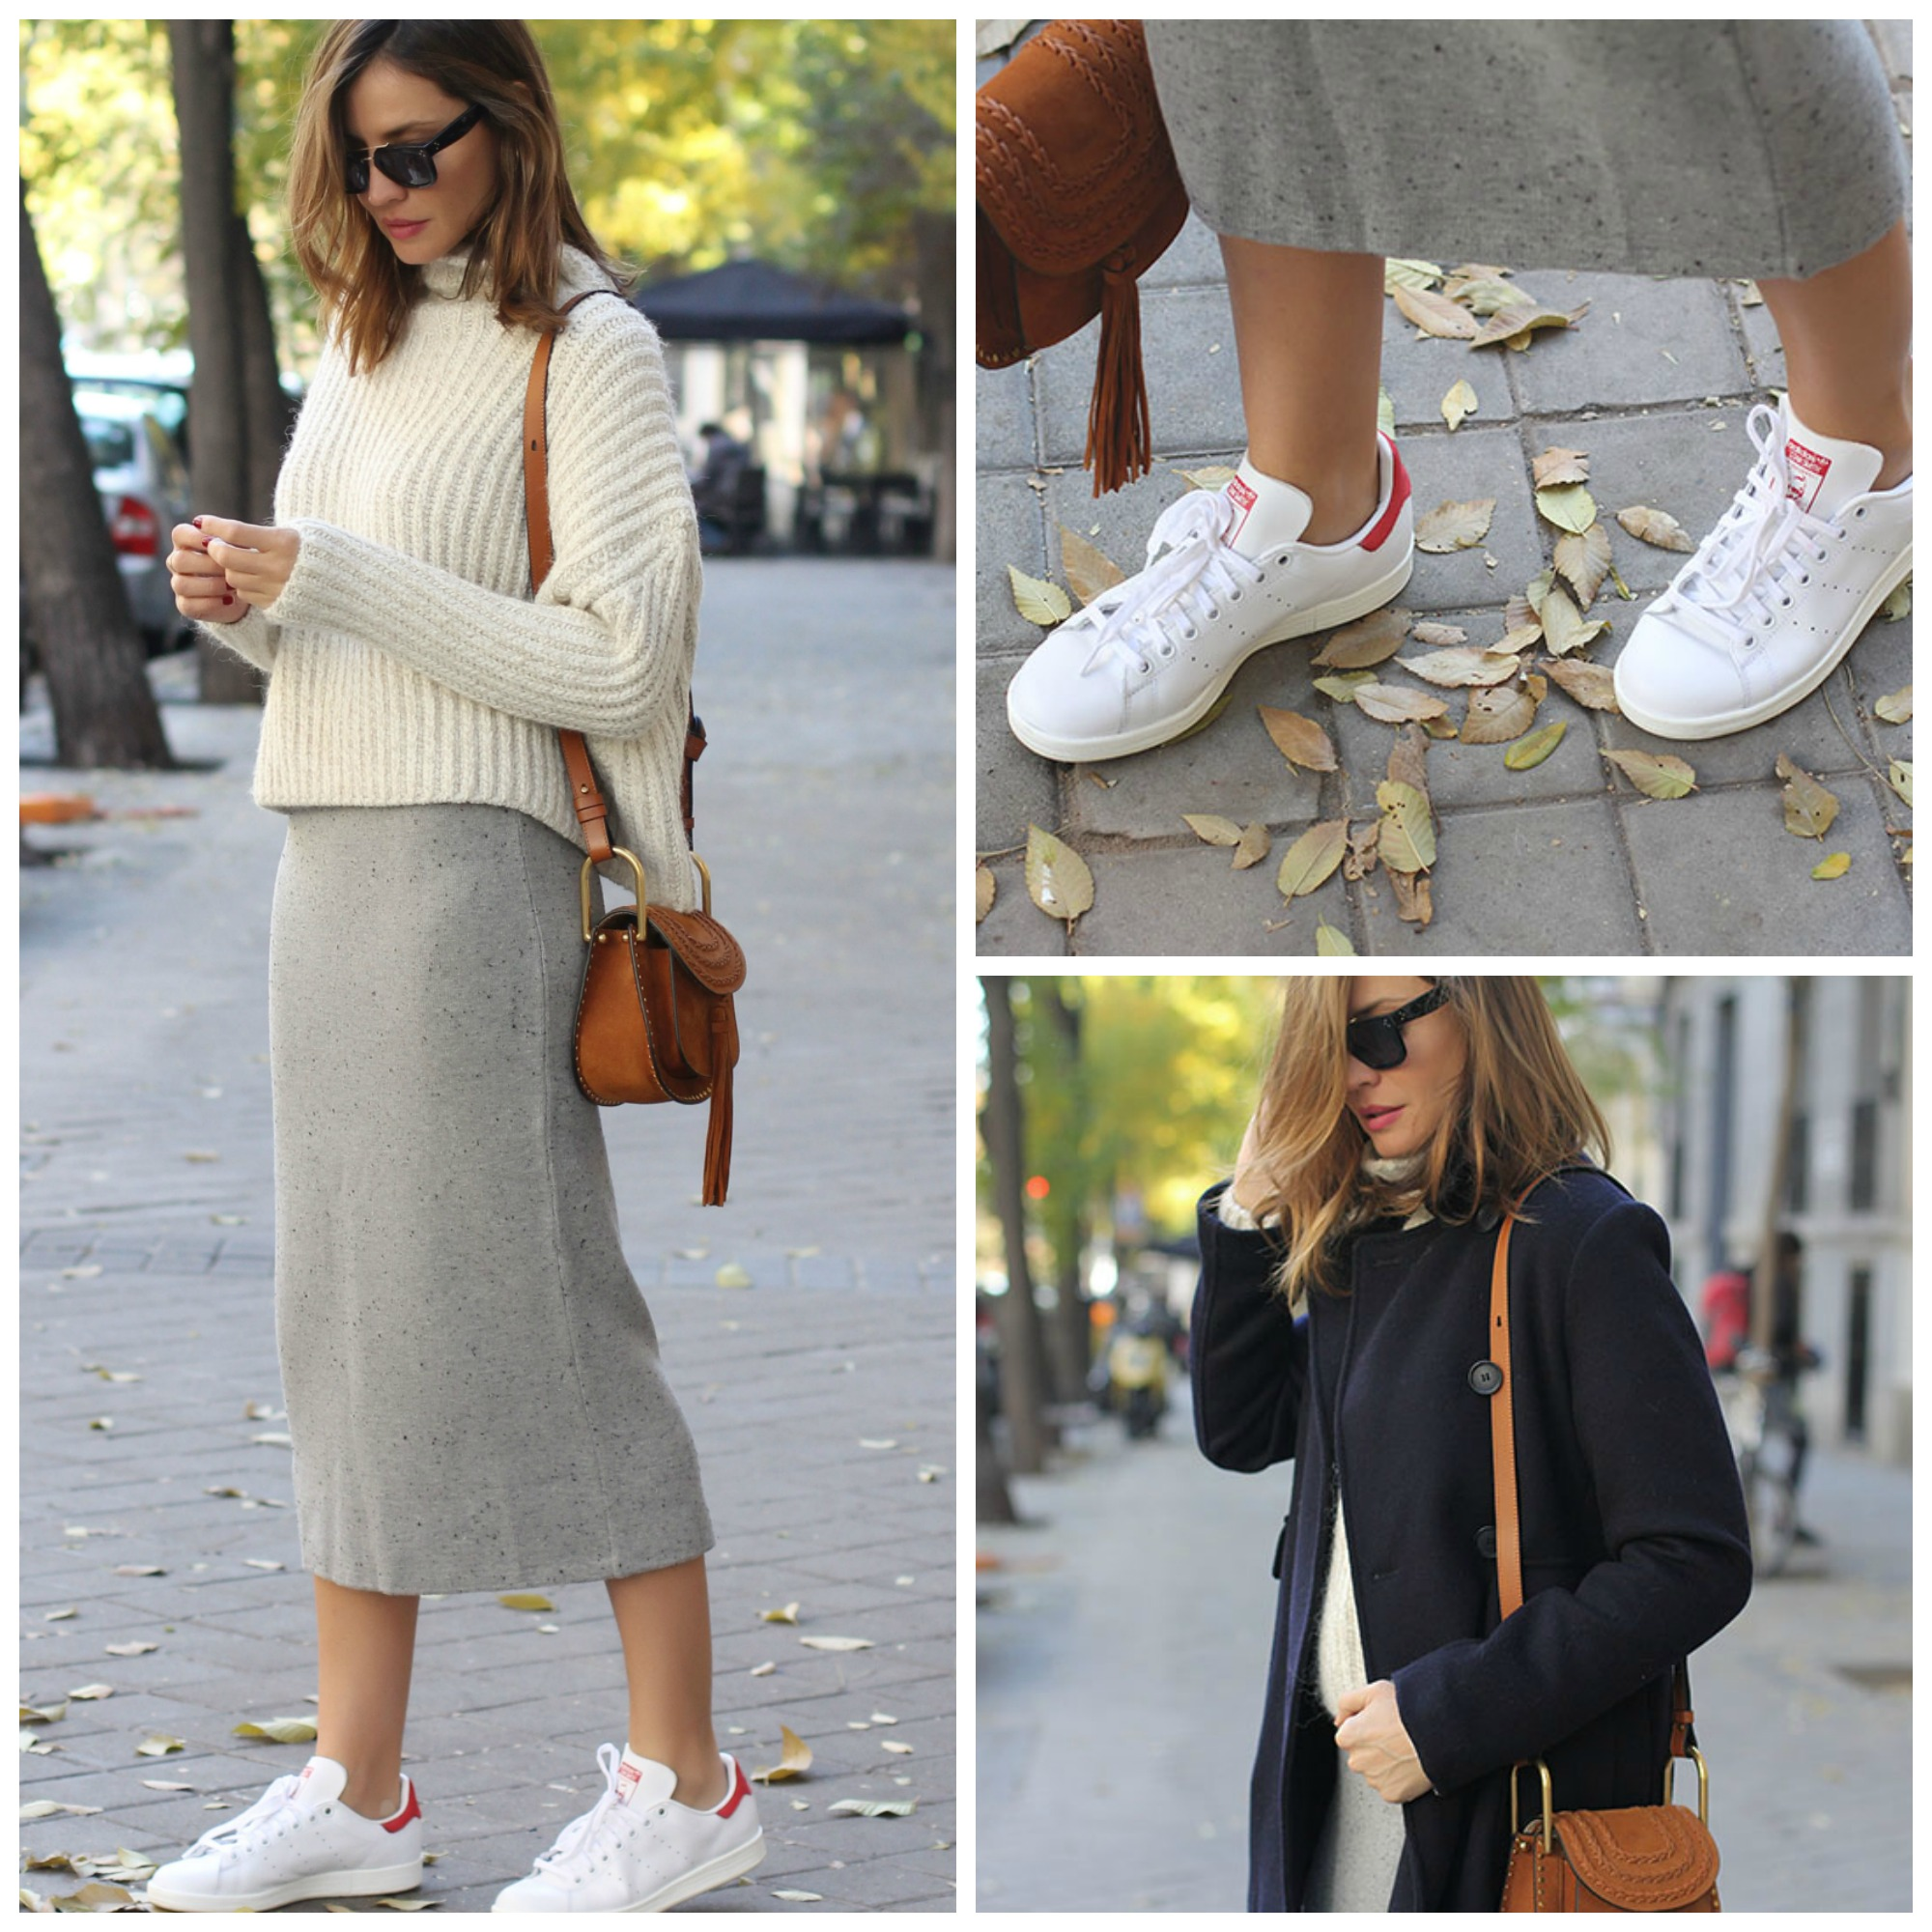 knitted-long-pencil-skirt-with-sneakers-winters